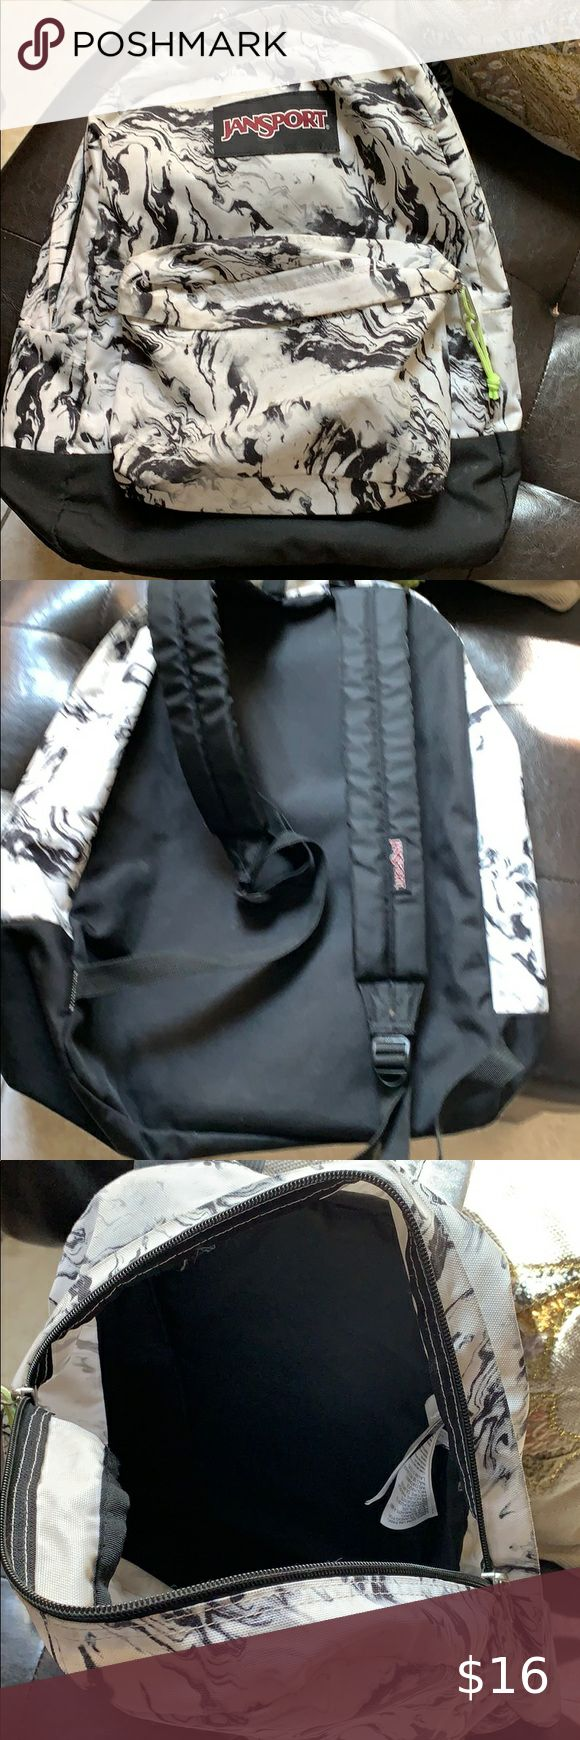 Jansport backpack black and white marble design in 2020